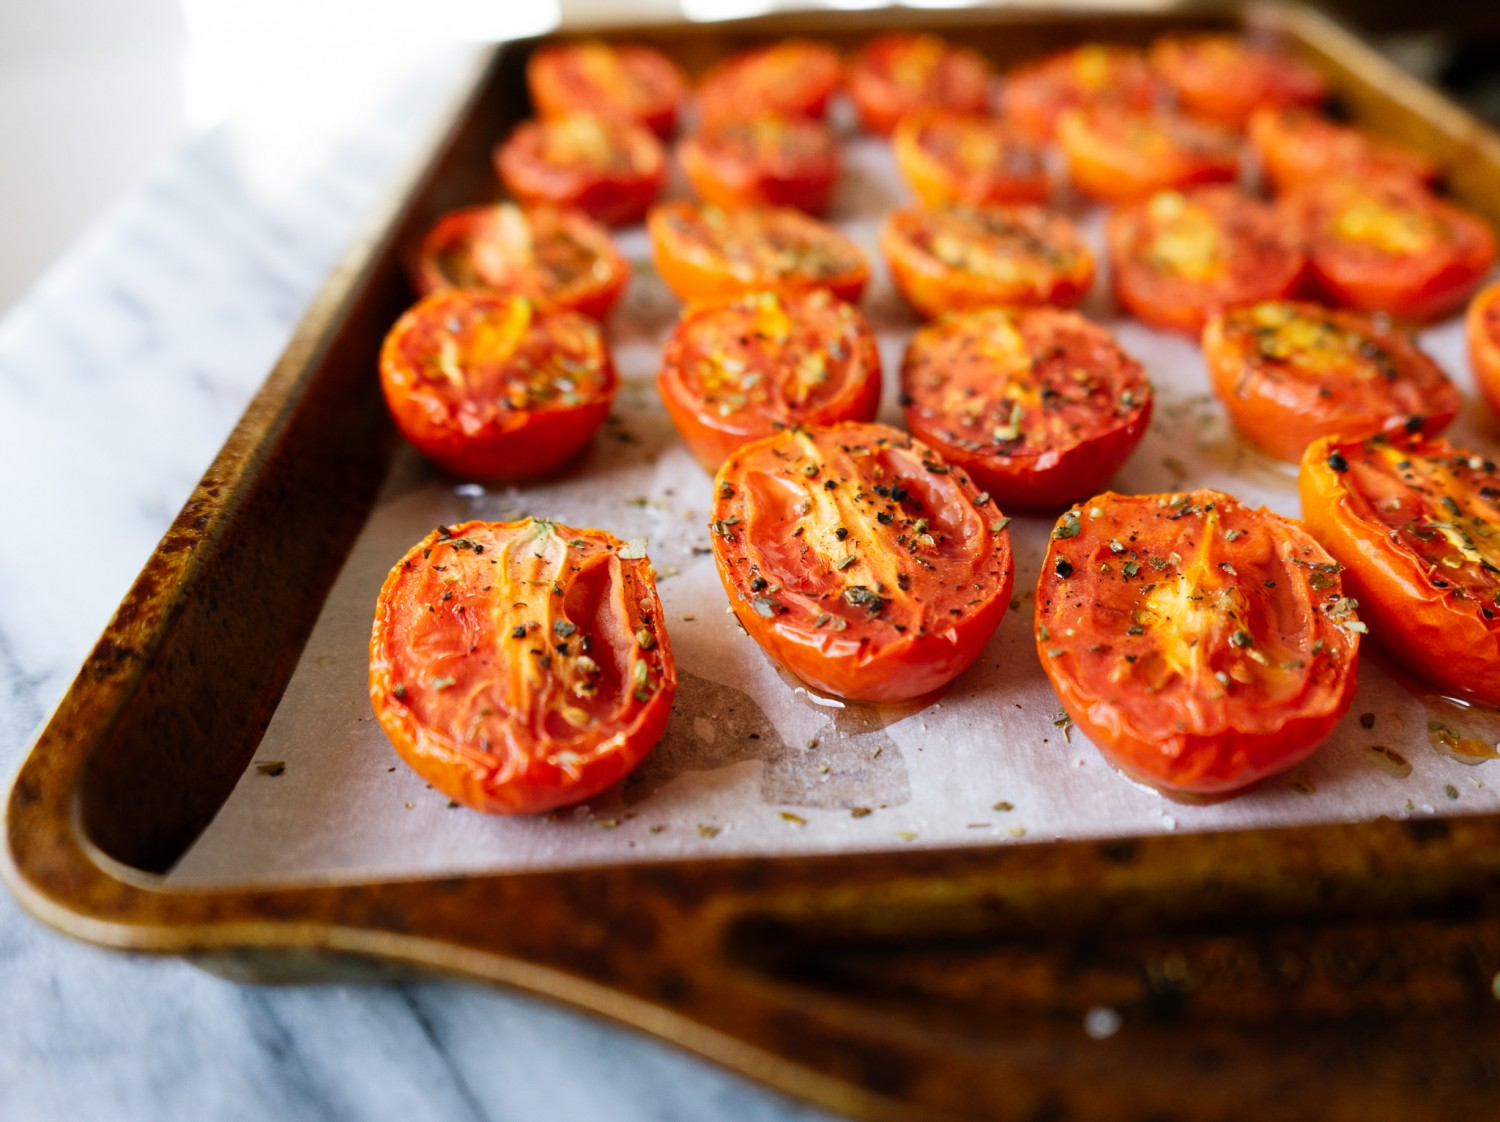 Three quarter view of roasted plum tomatoes on a sheet pan